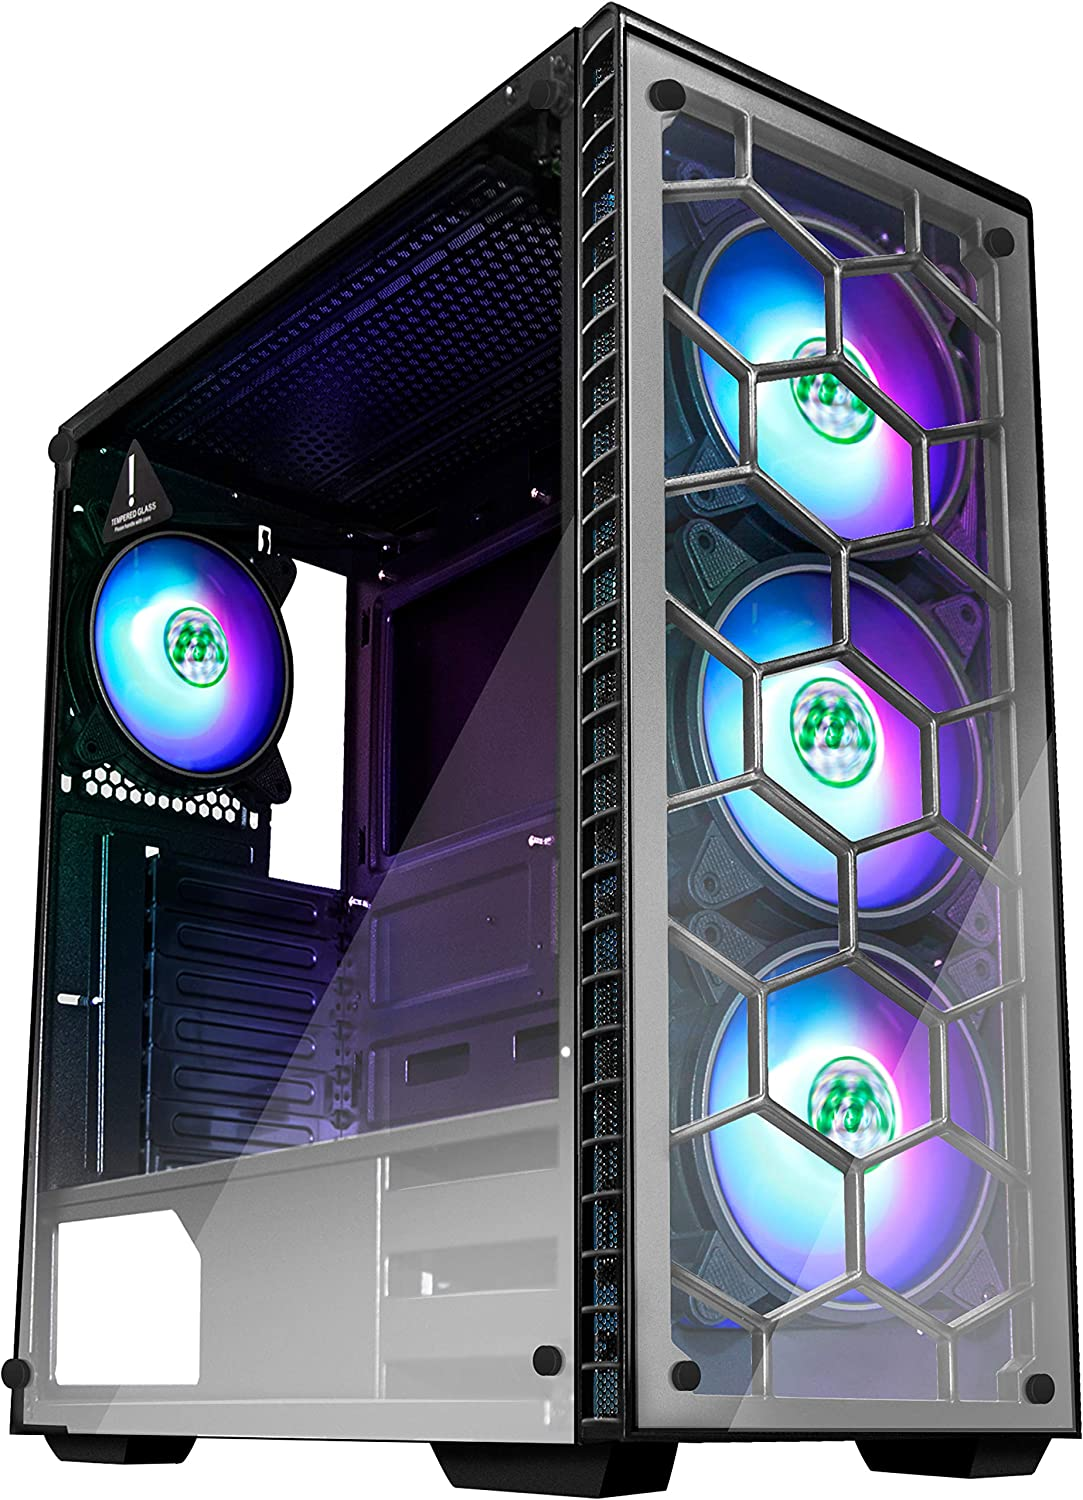 MUSETEX ATX Mid Tower Gaming Computer Case 4 RGB LED Fans,Up to 6 Fans, 2 Translucent Tempered Glass Panels USB 3.0 Port,Cable Management/Airflow, Gaming Style Window Case (903N4)